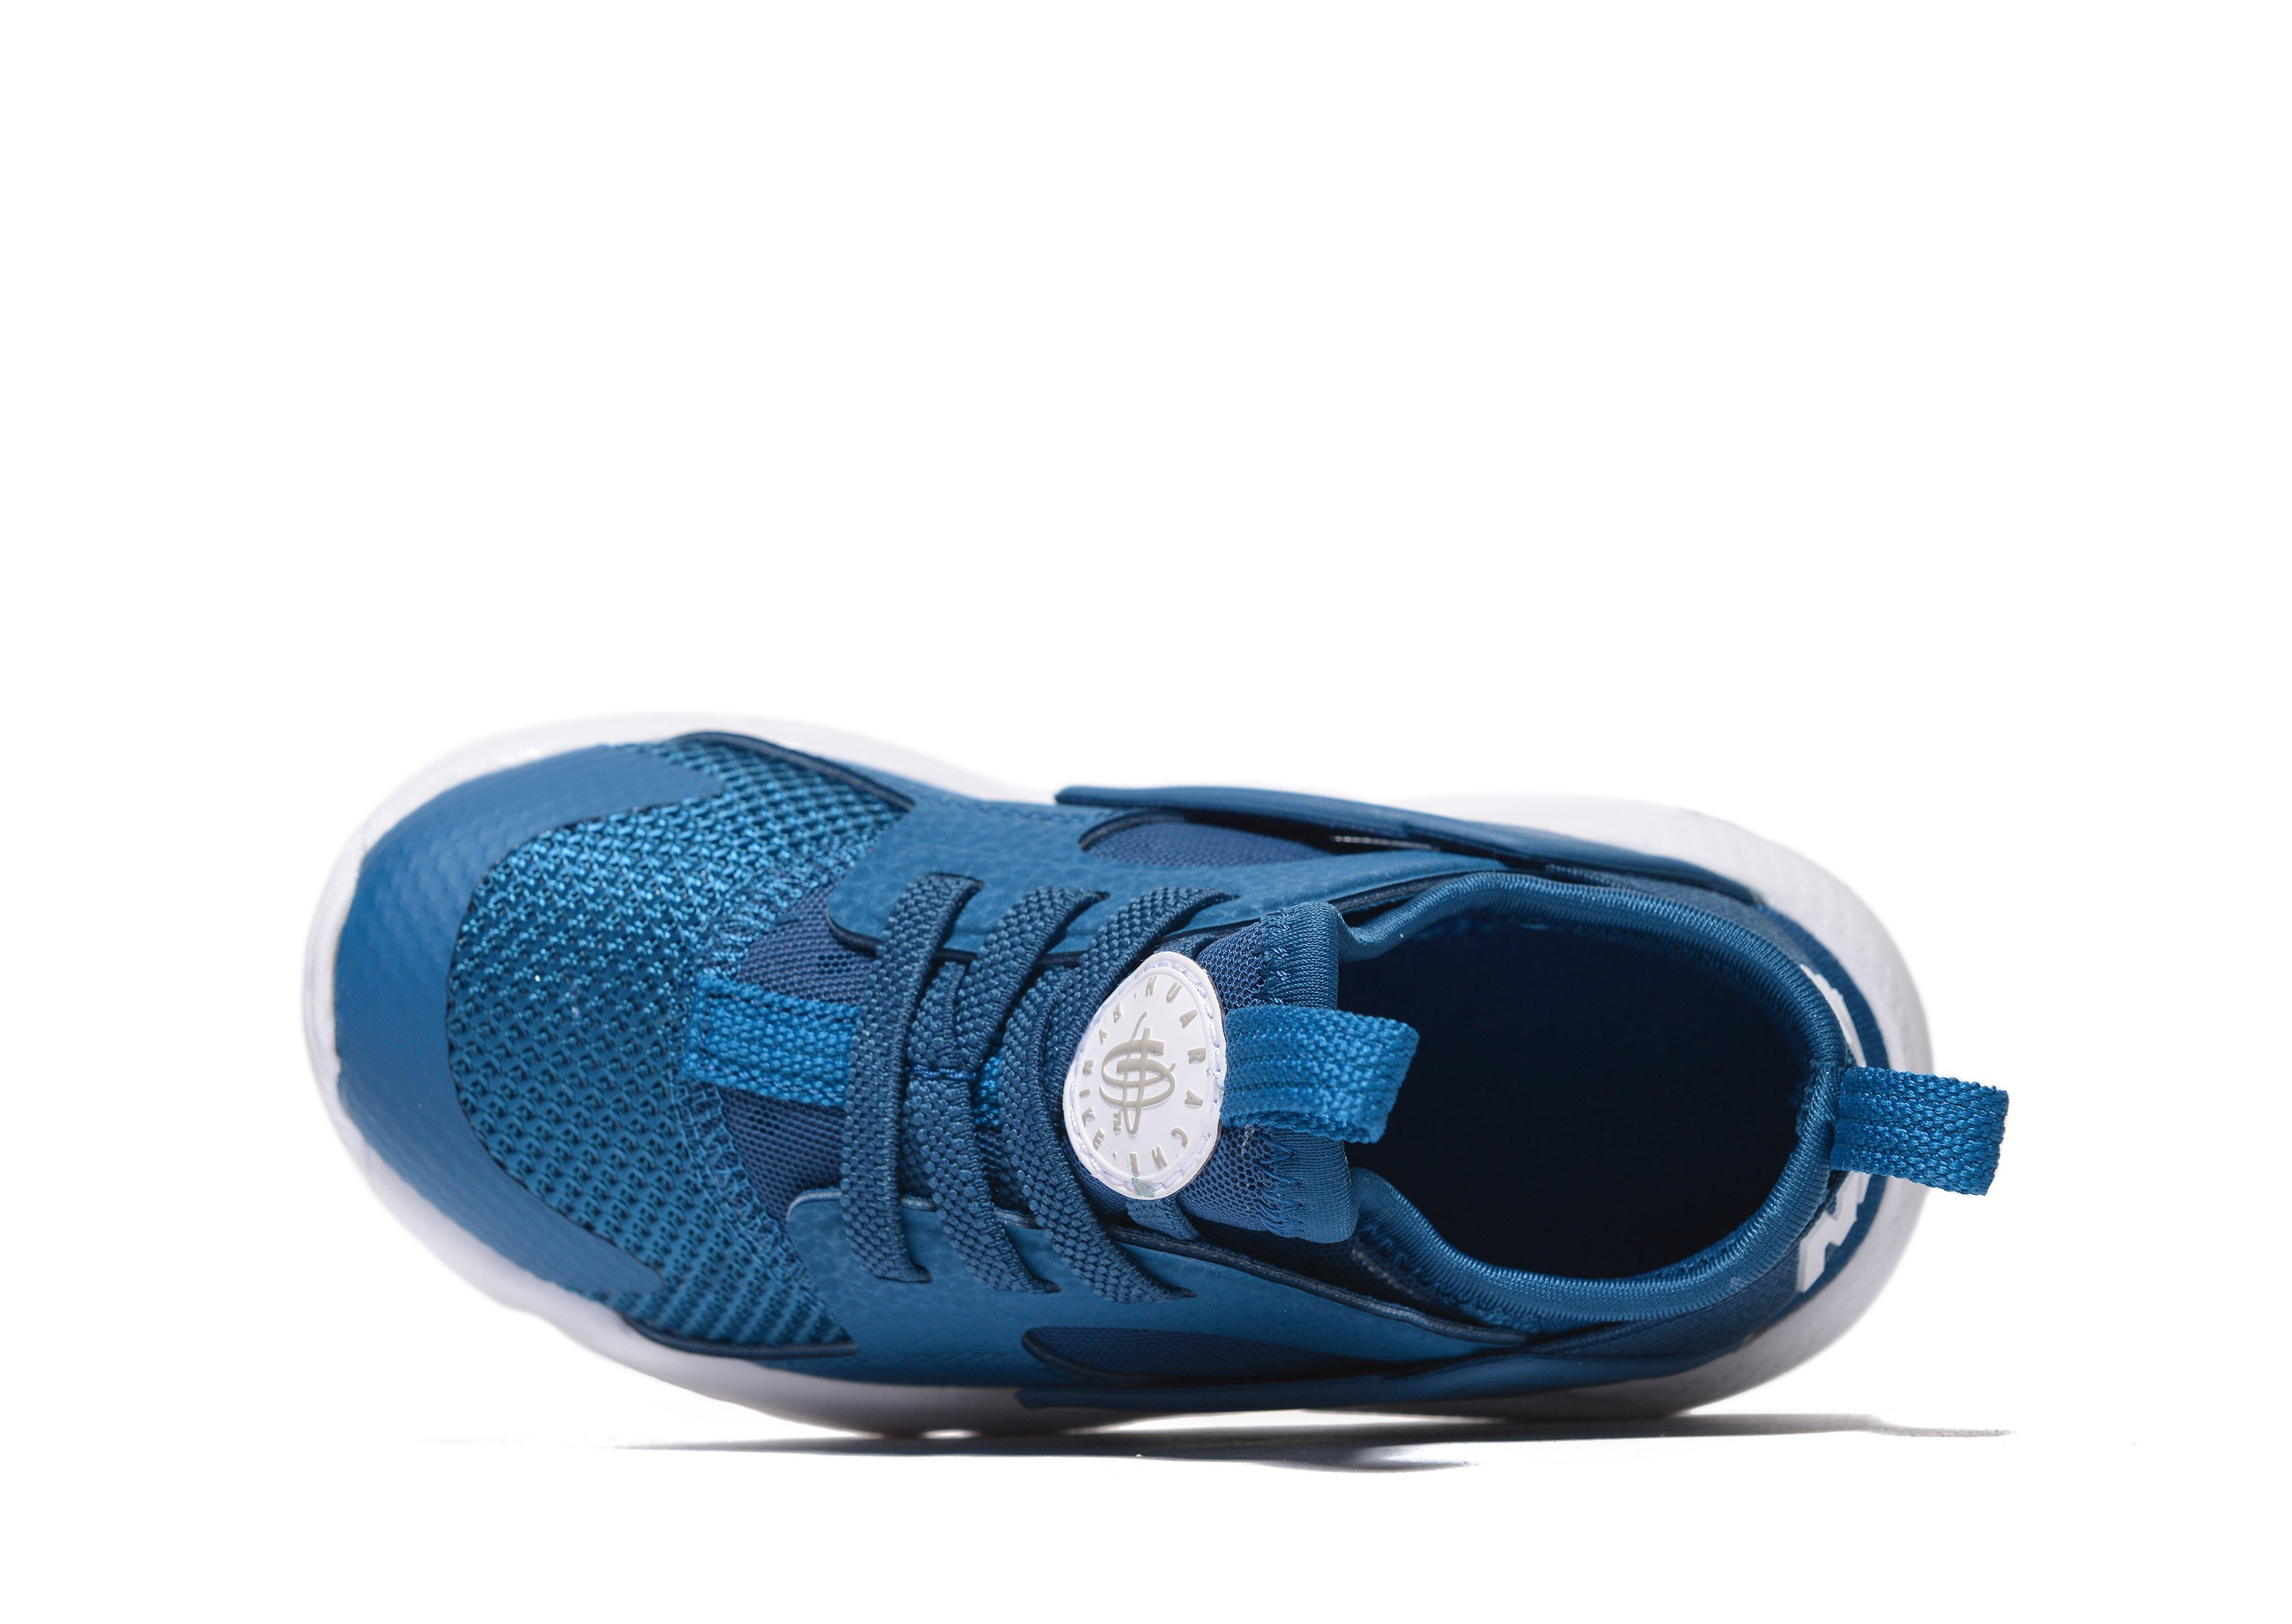 a18c55e1bec7 Gallery. Previously sold at: JD Sports · Men's Nike Huarache Sneakers